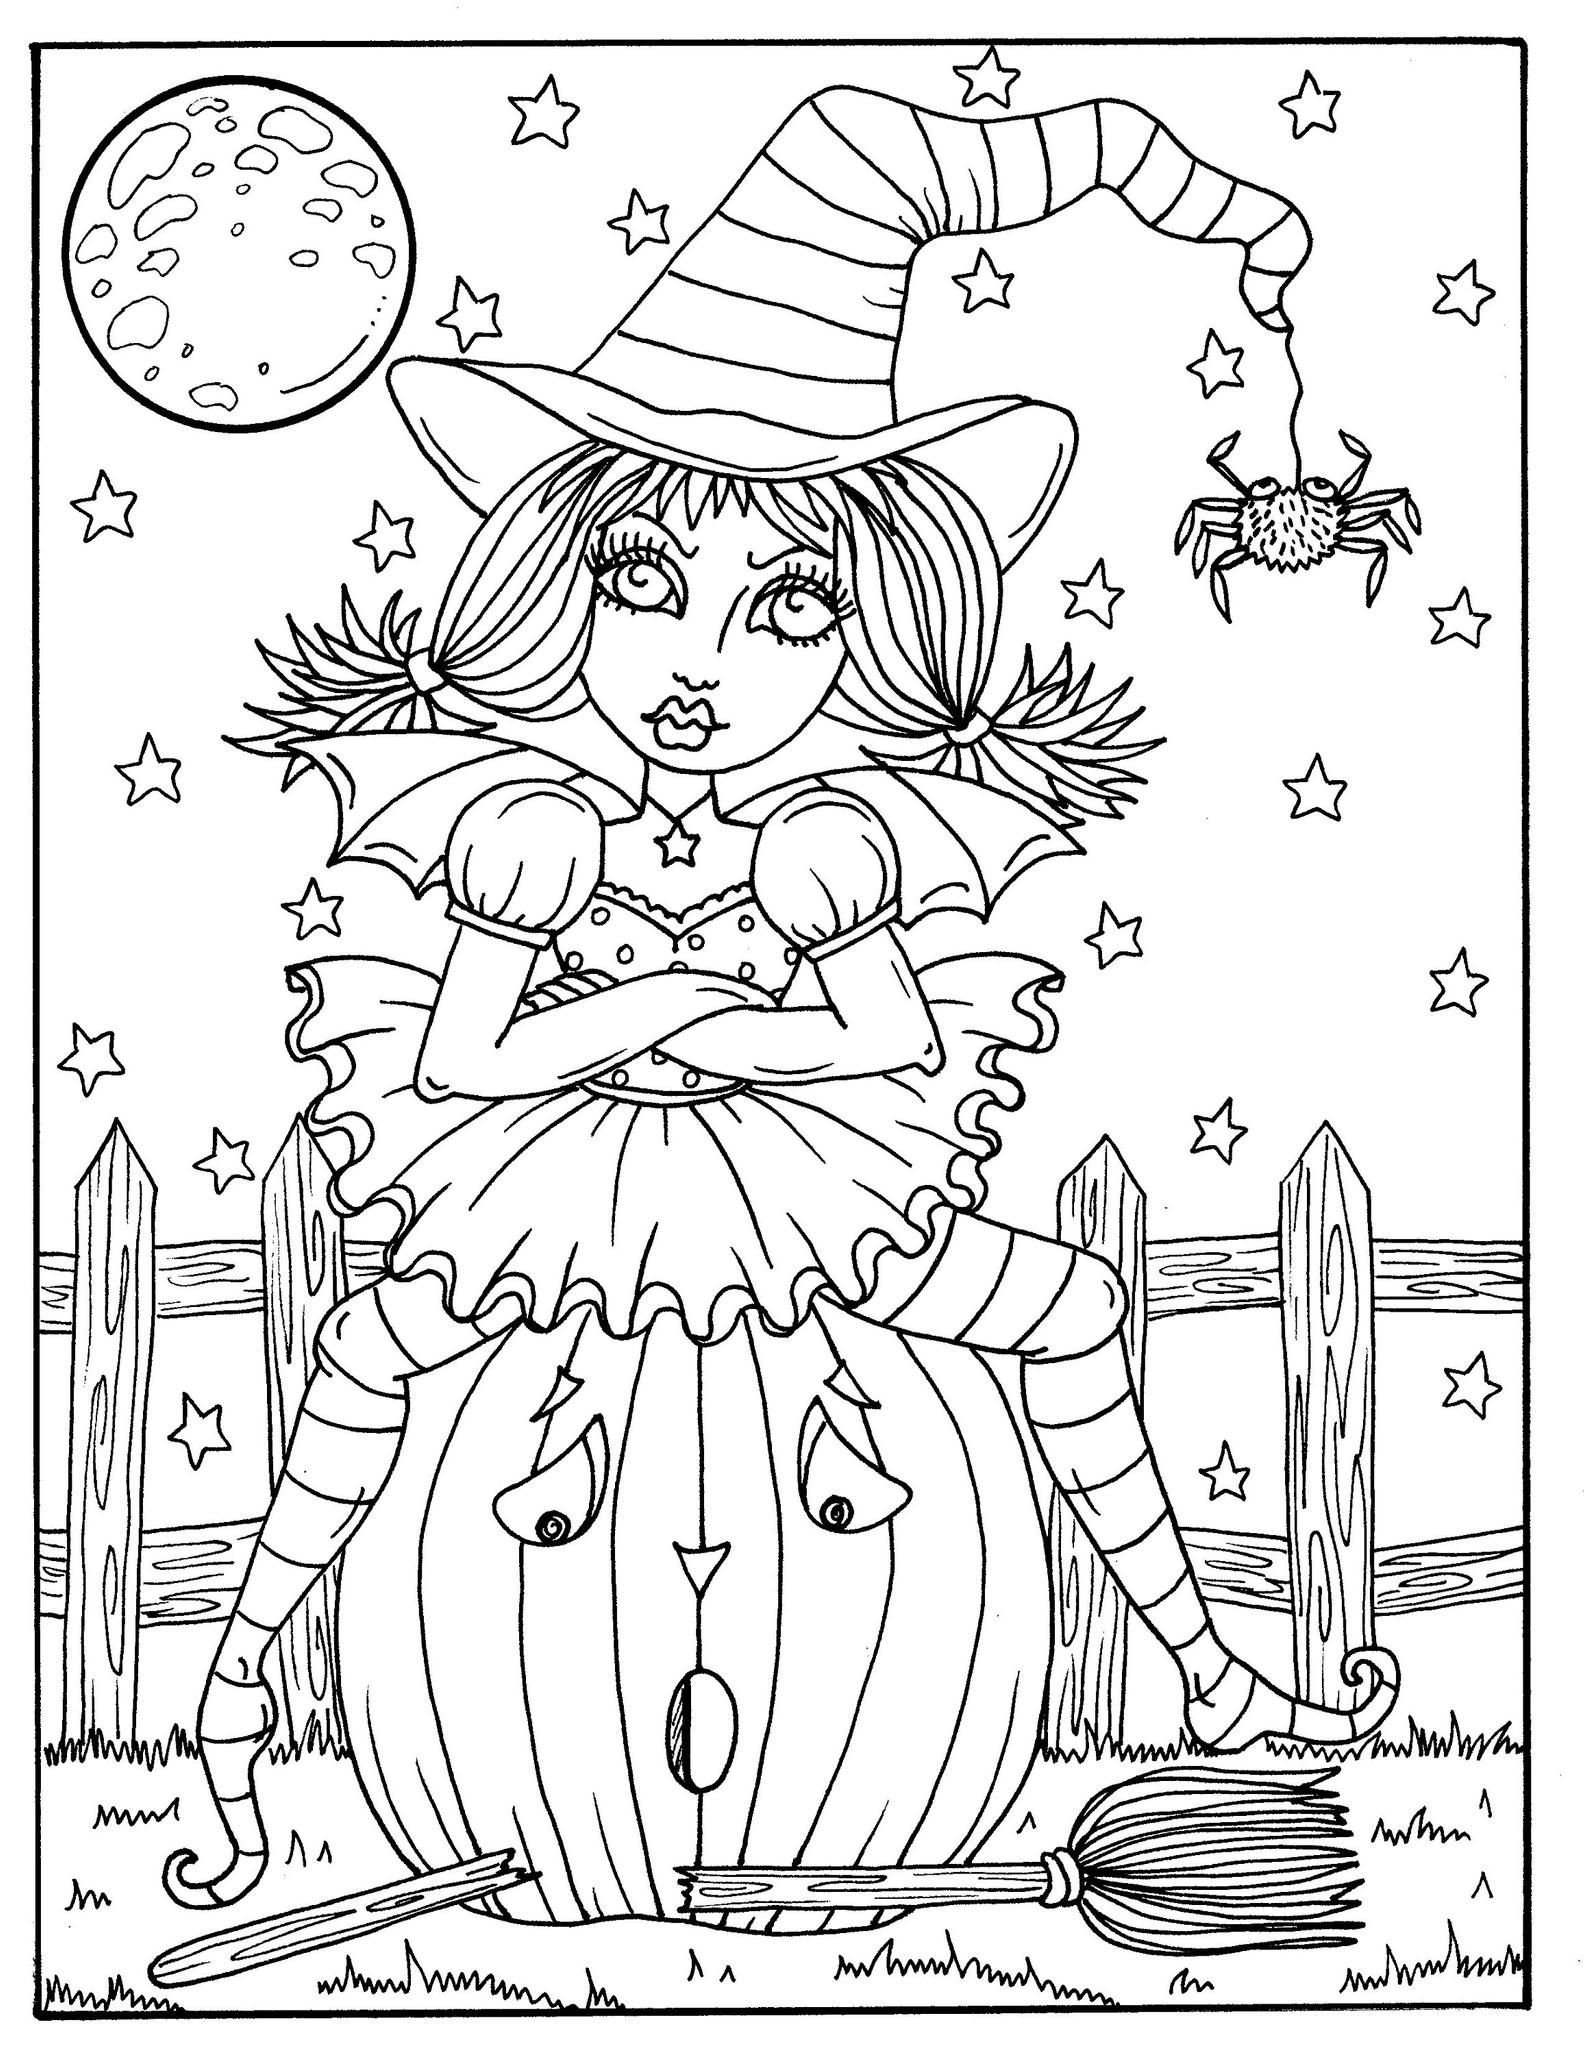 Hocus Pocus Witches Printable Coloring Pages For Adults Etsy Halloween Coloring Book Witch Coloring Pages Halloween Coloring